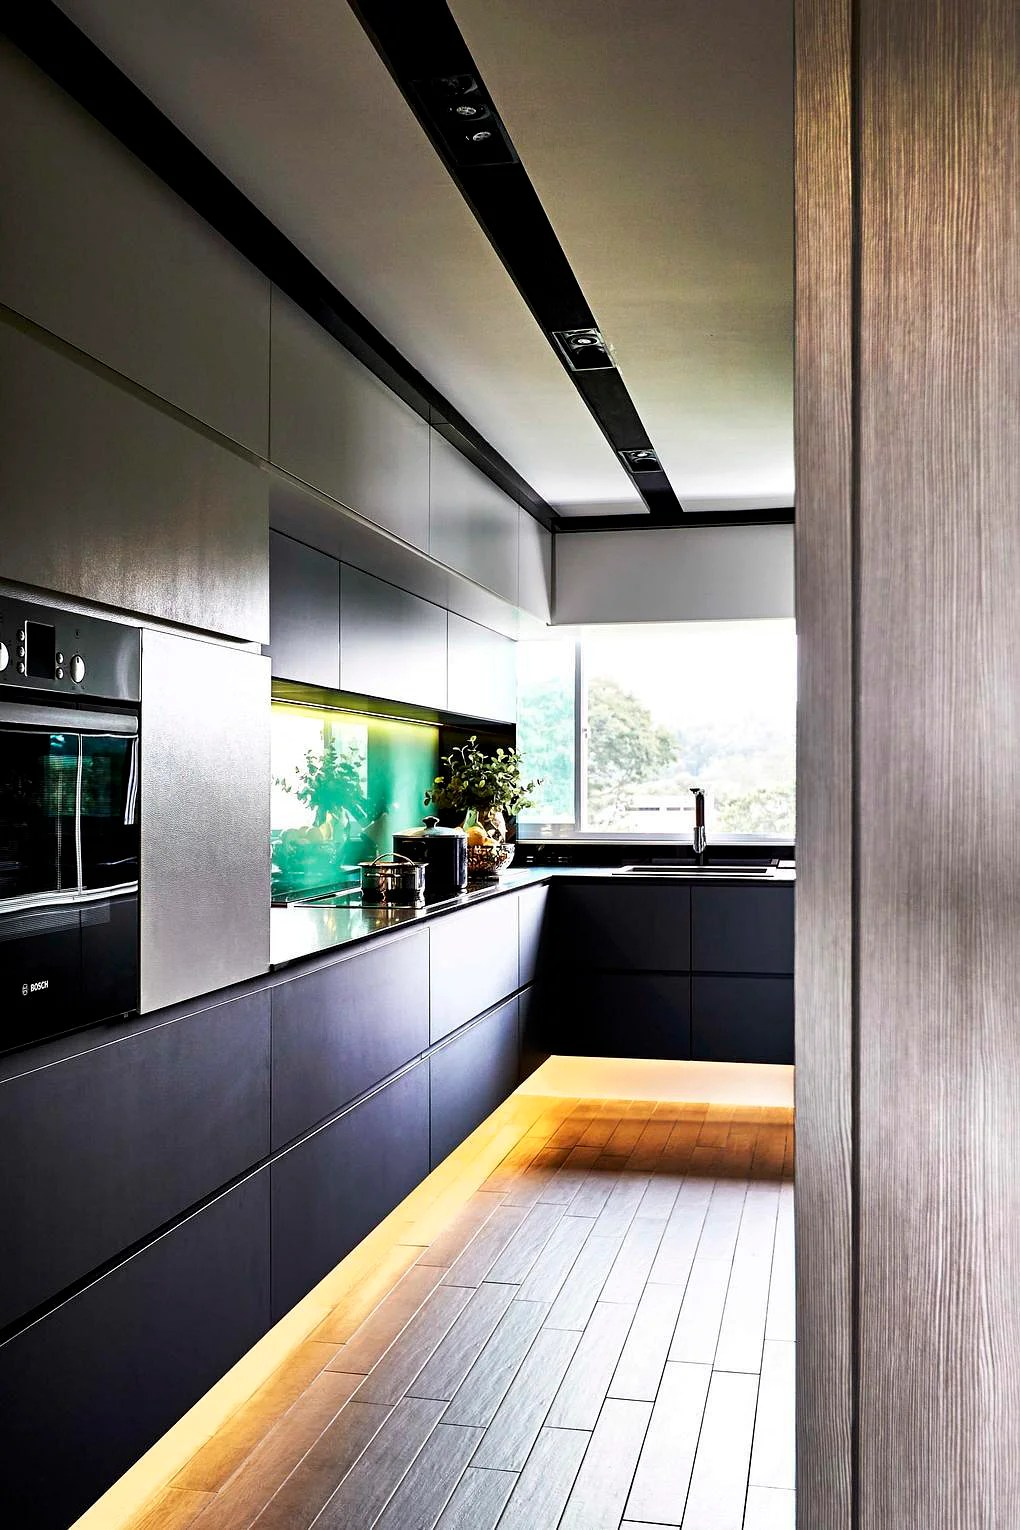 kitchen design ideas from these 13 hdb homes | home & decor singapore